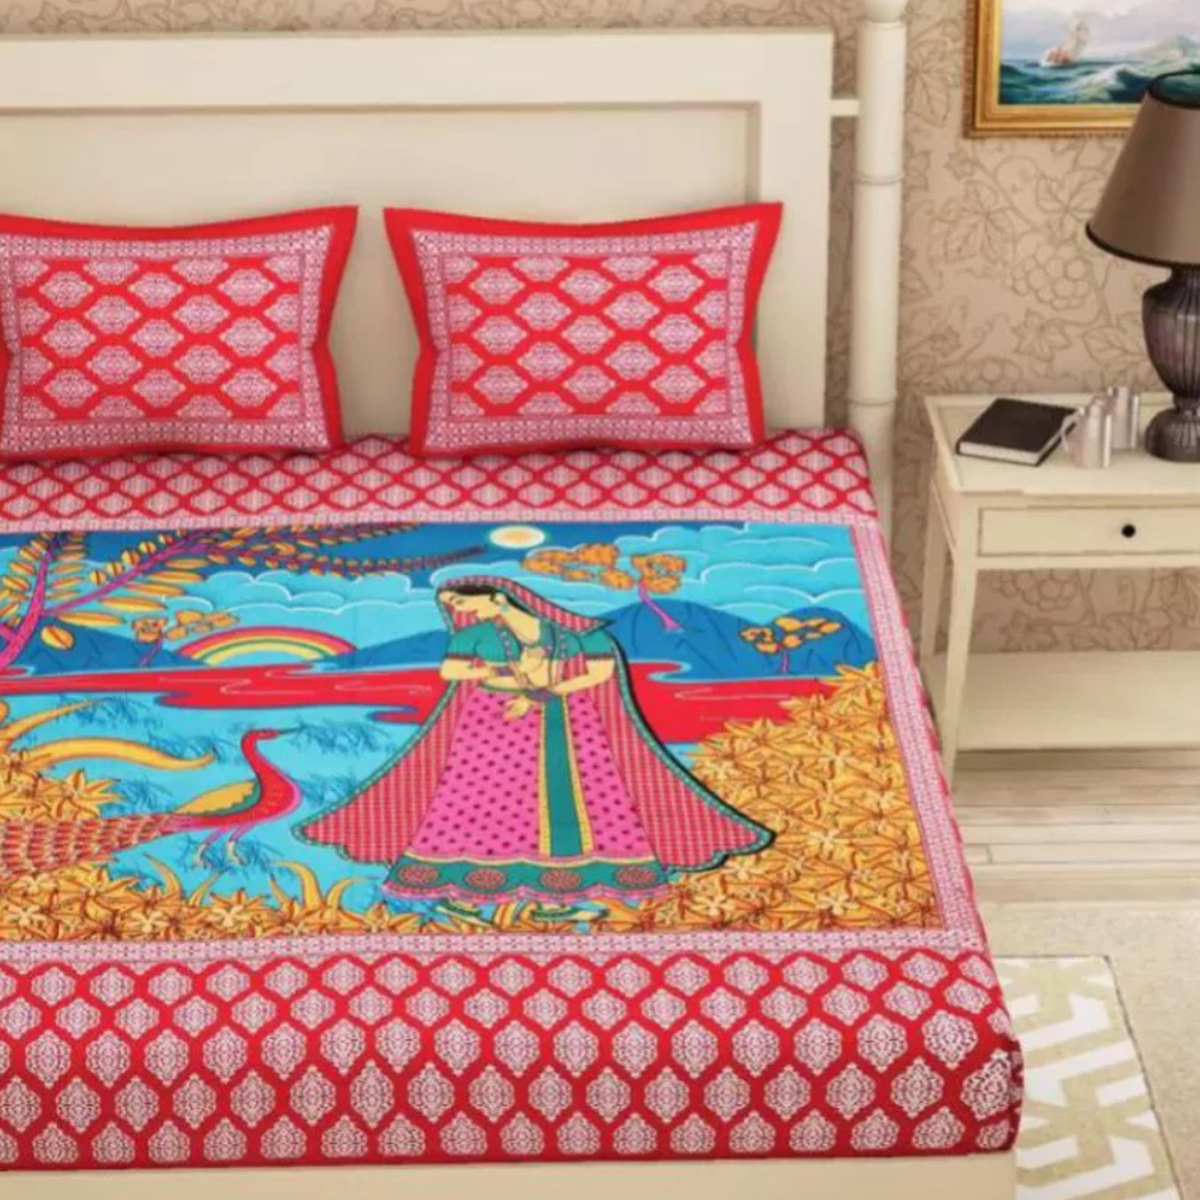 Preferable Red Colored Printed Cotton Double Bedsheet With 2 Pillow Cover